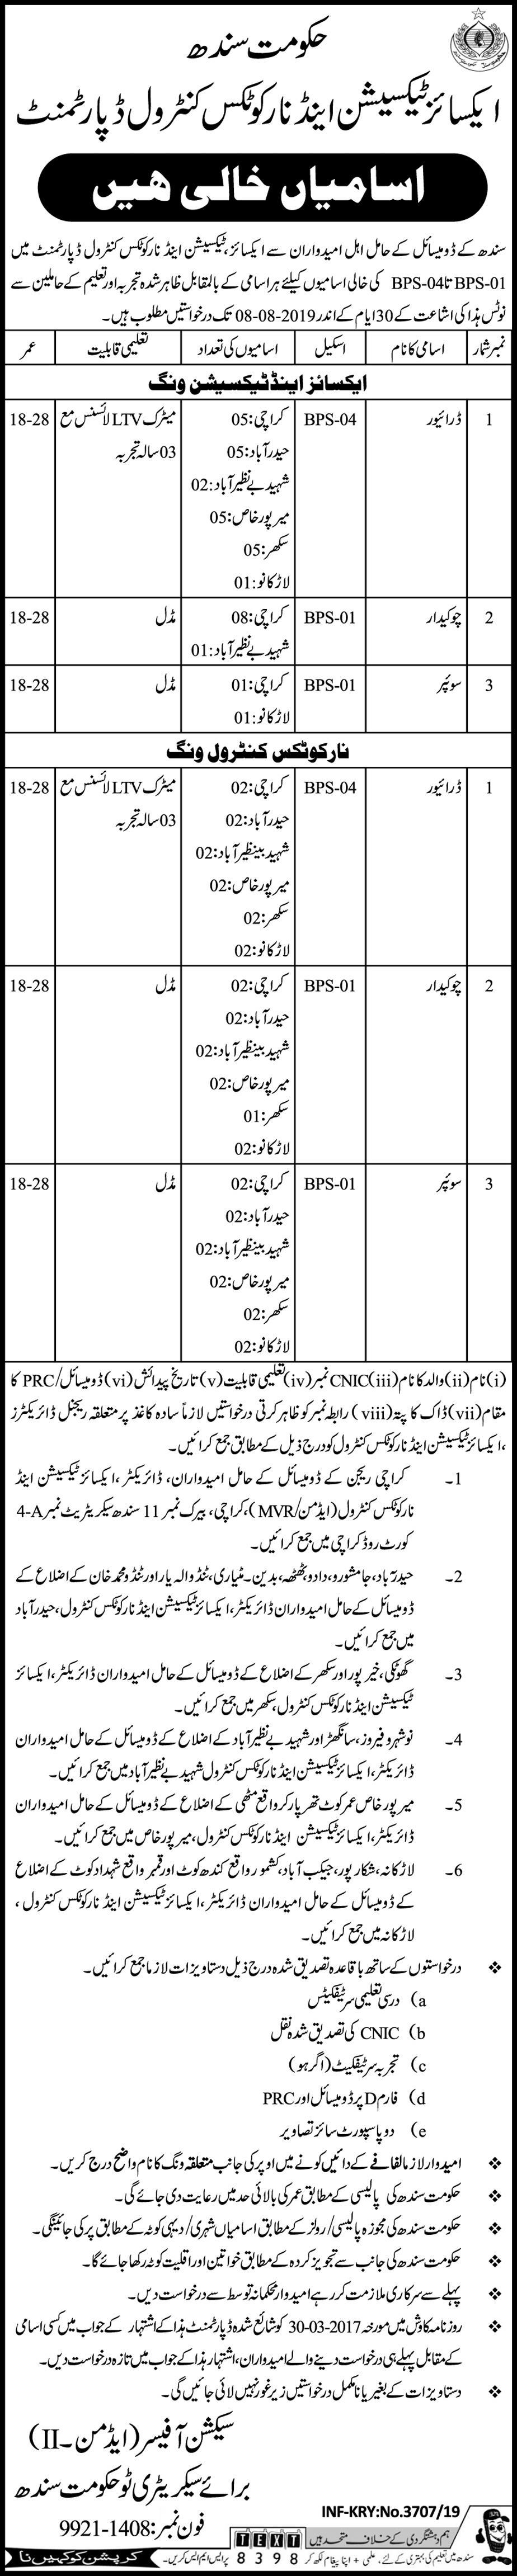 Jobs-in-Excise-Taxation-and-Narcotics-Control-Department-11-Jul-2019.jpg